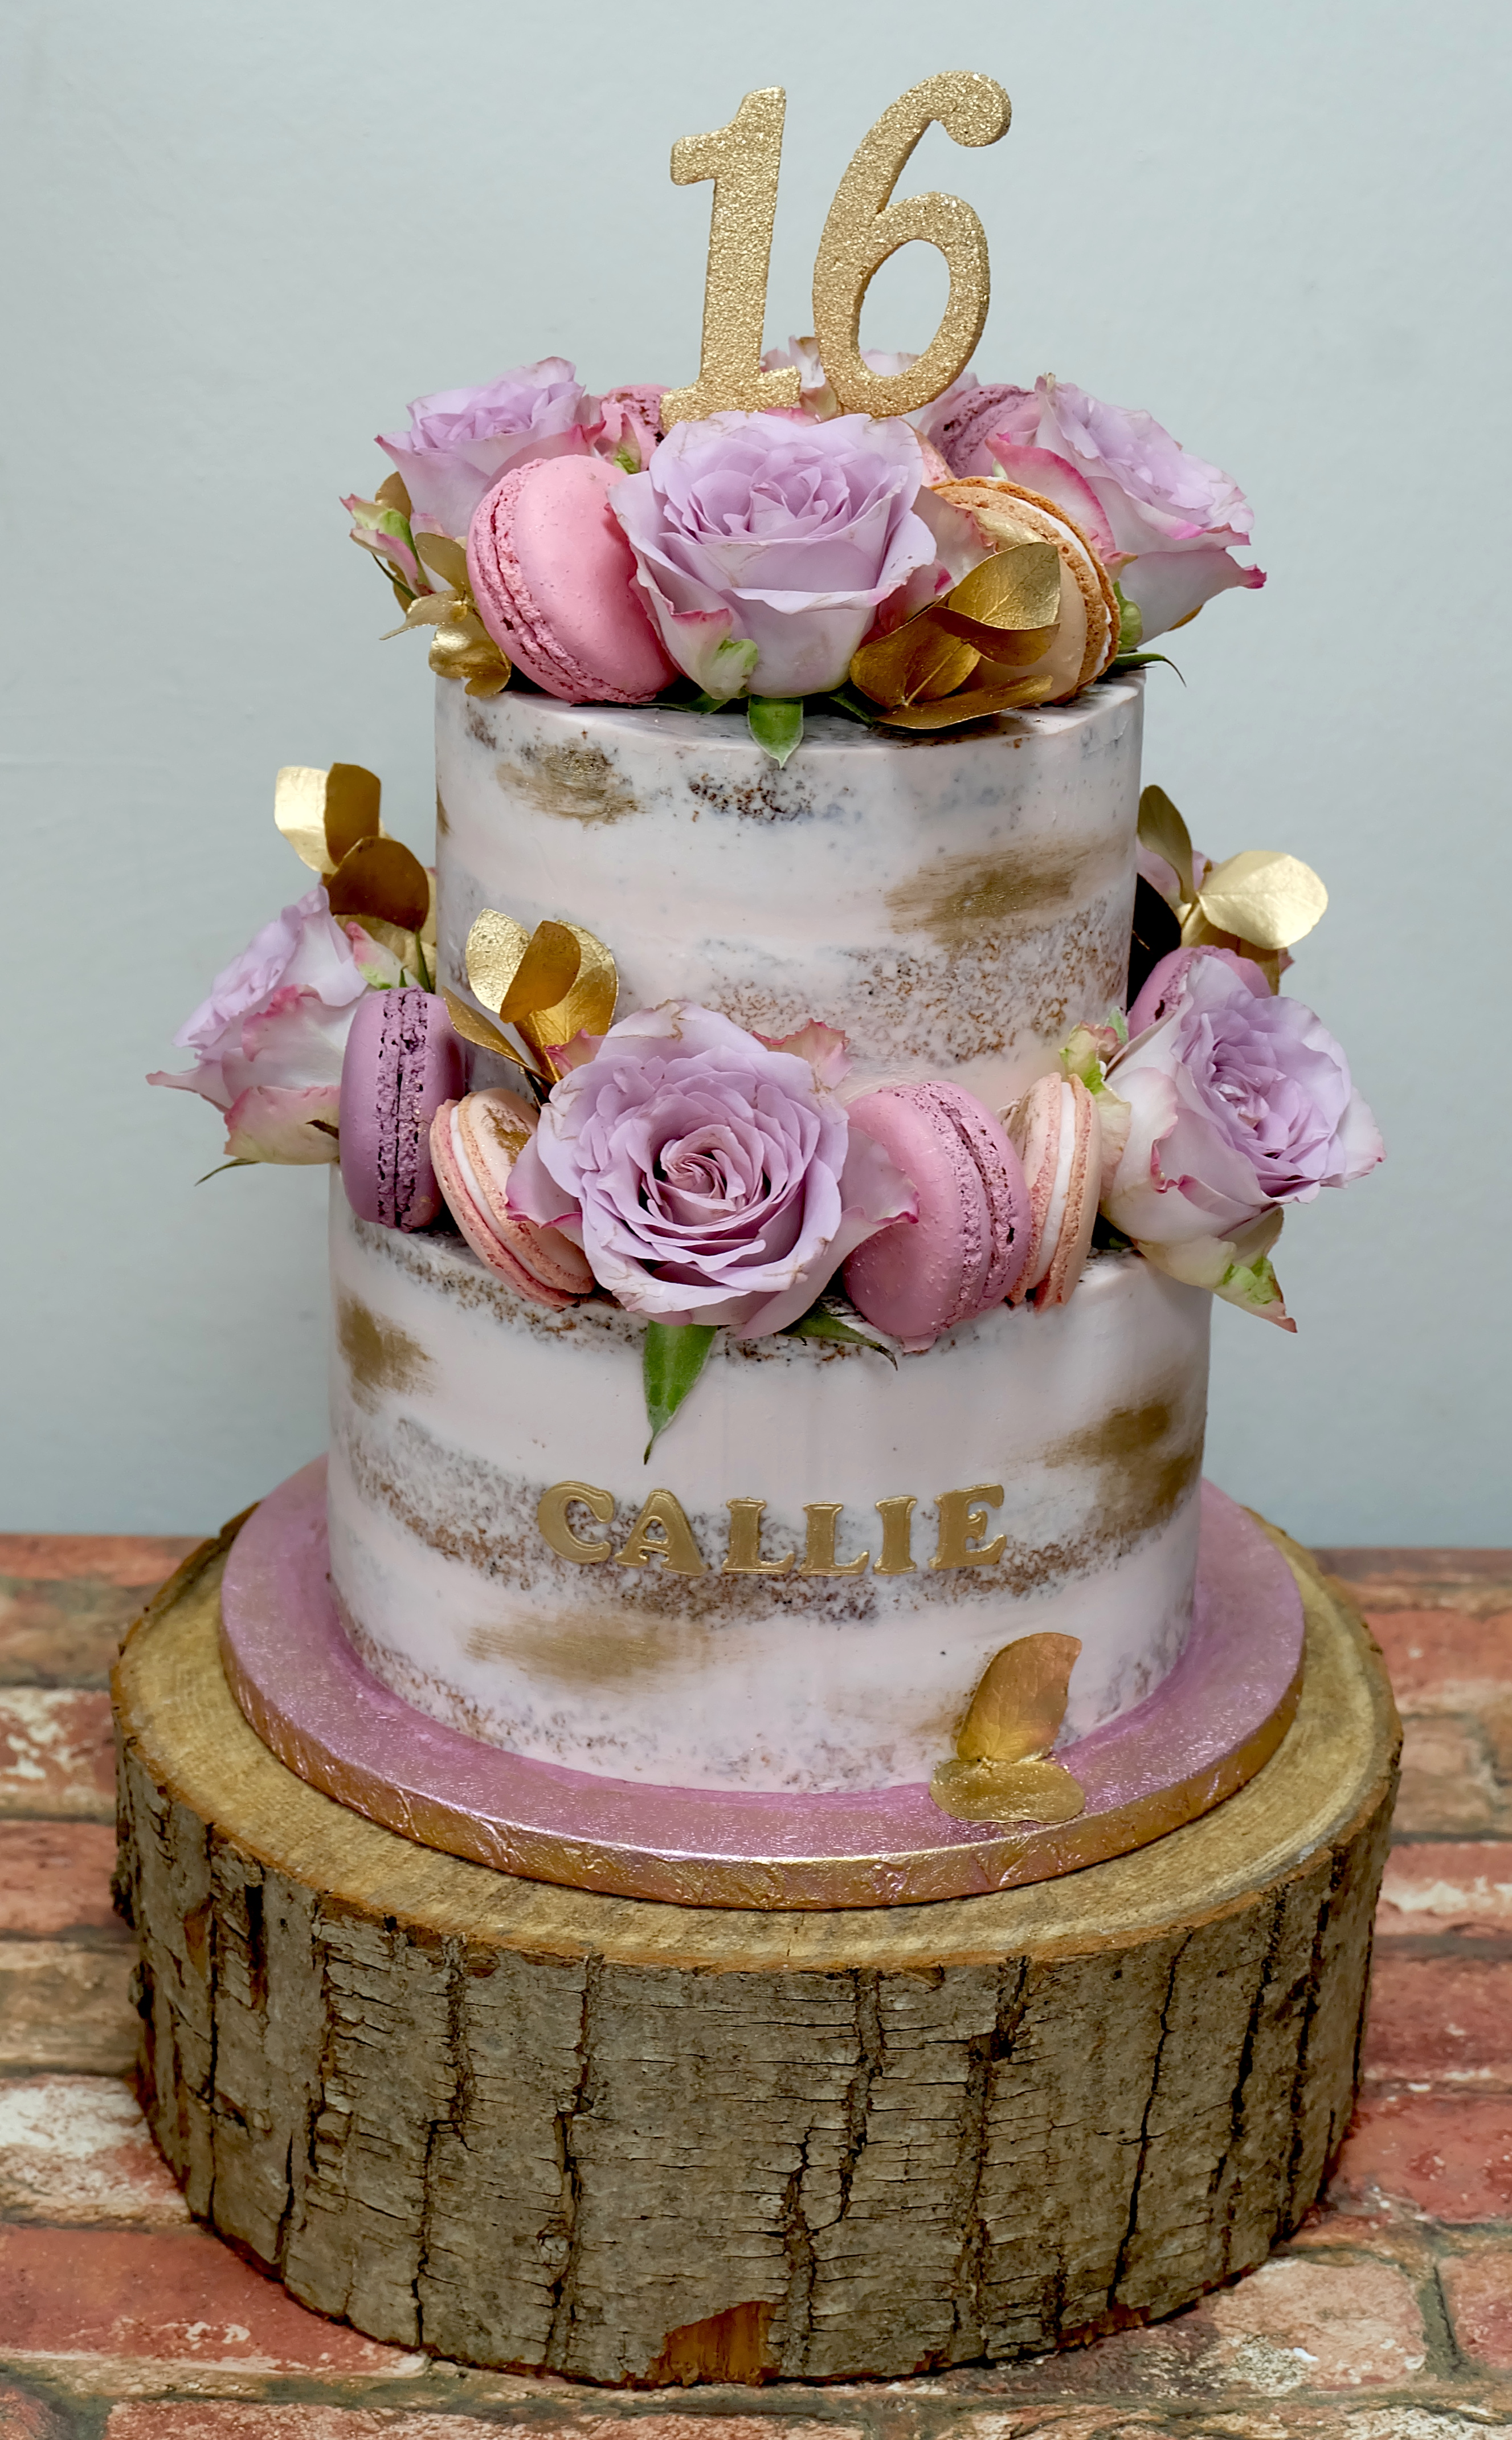 Semi Naked Cake with Macarons, Roses and Gold Detail